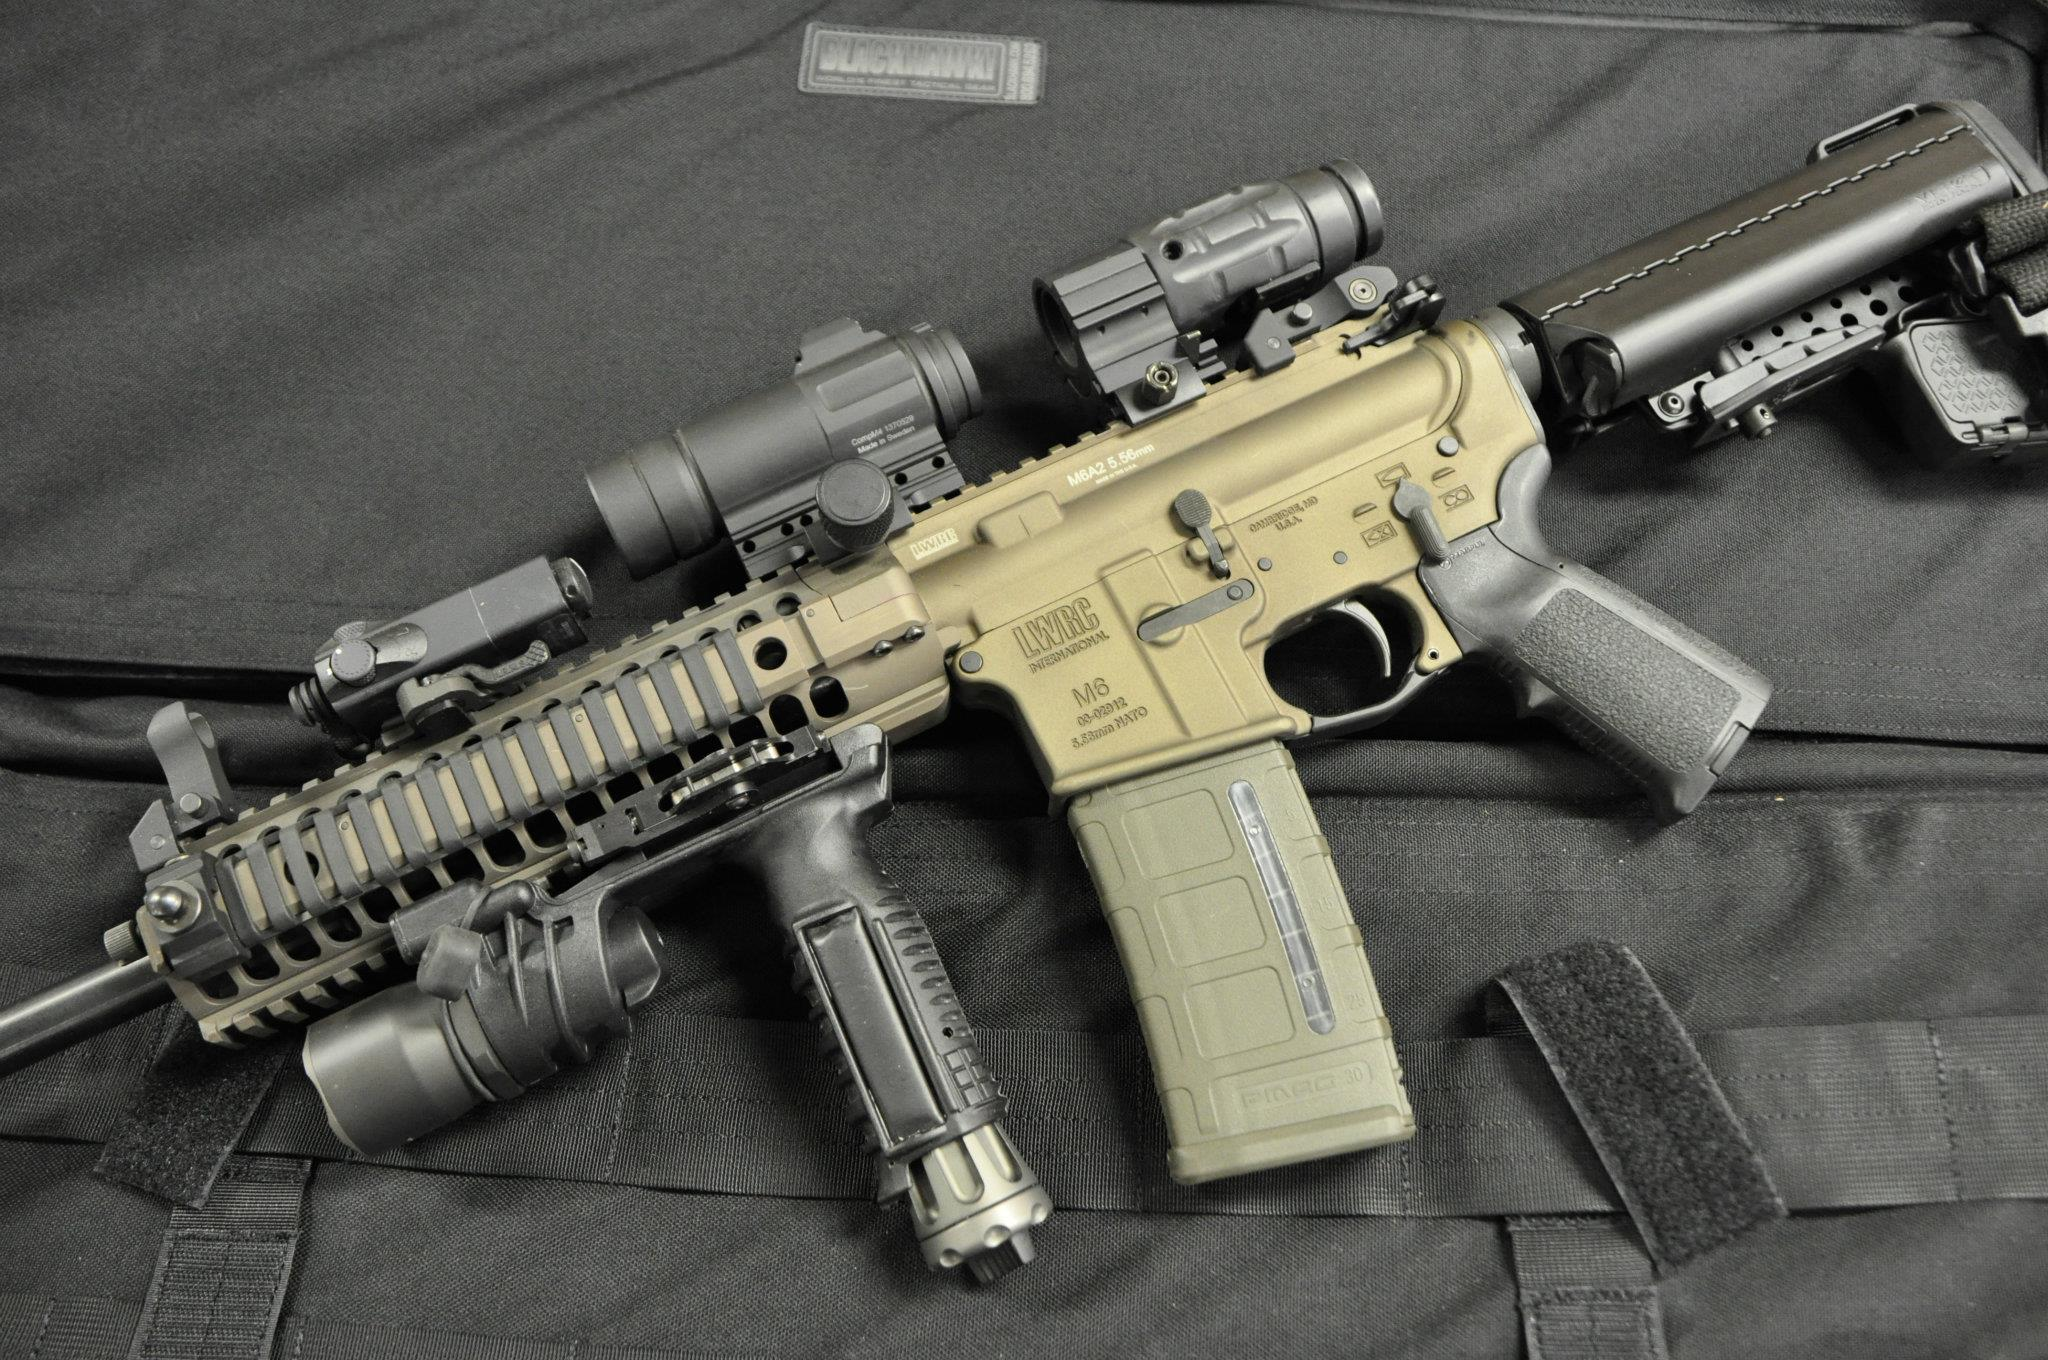 Noveske AR15 AR10 products for sale  Tombstone Tactical